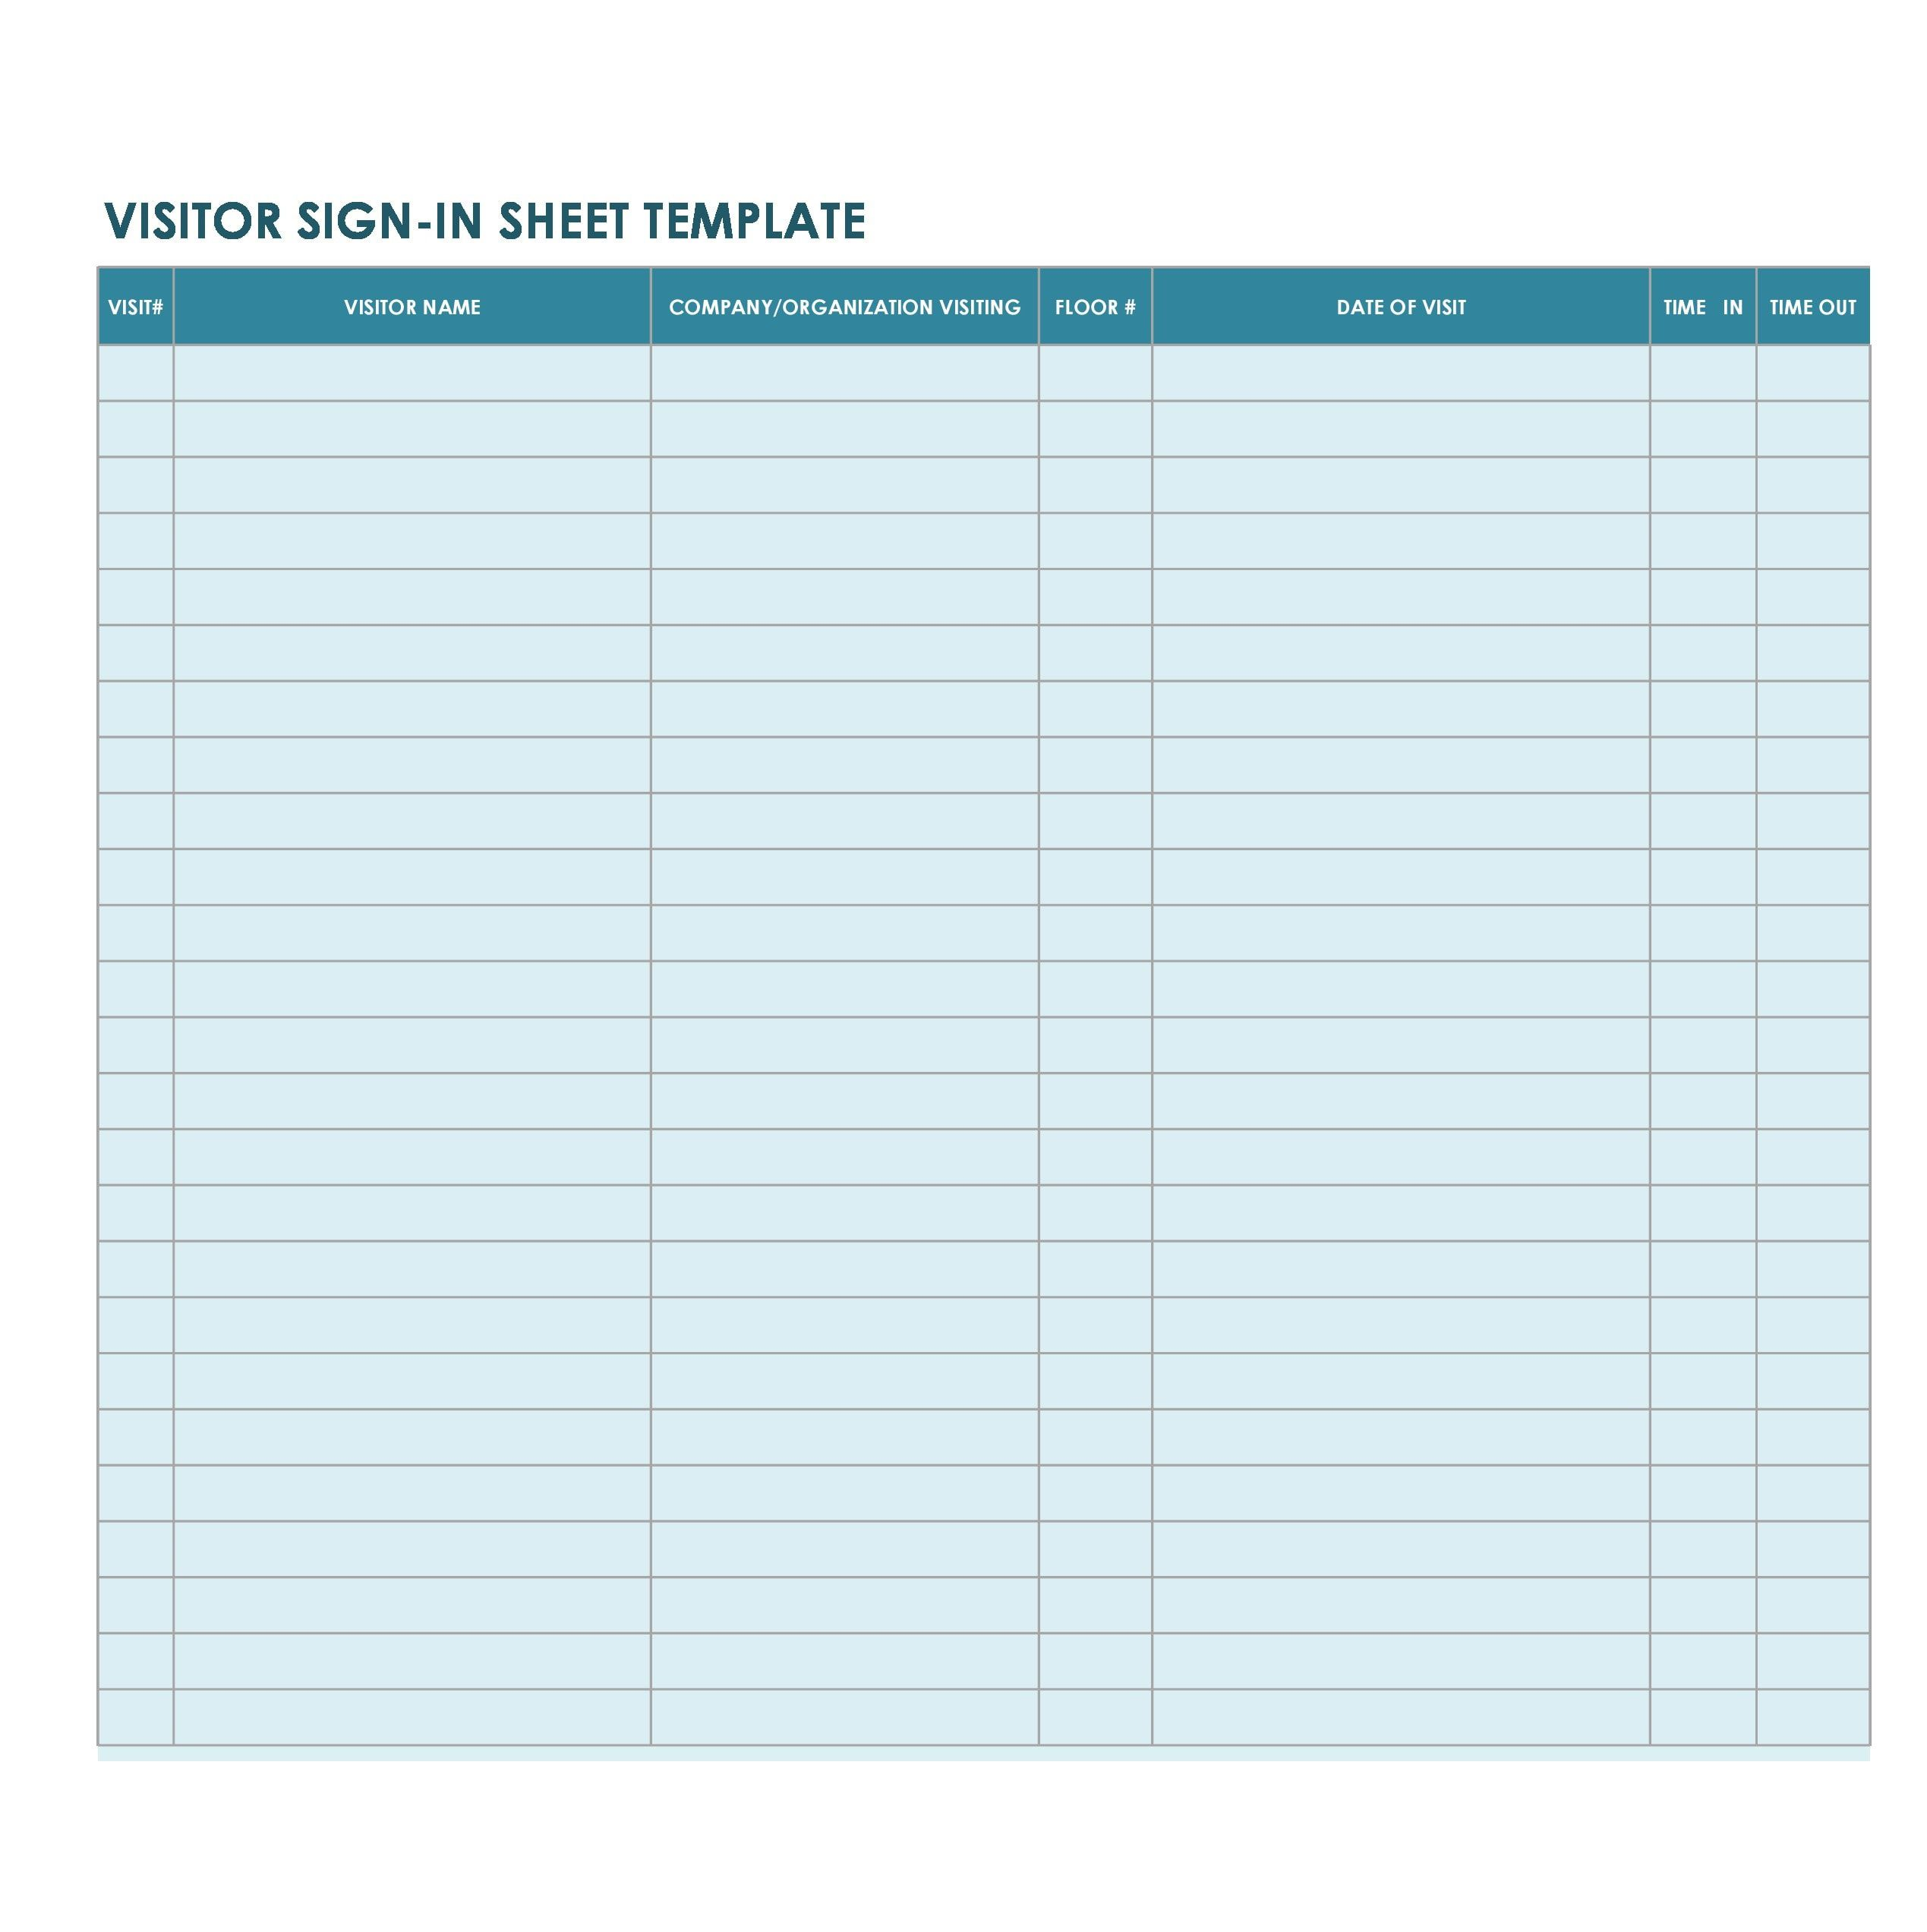 008 Rare Visitor Sign In Sheet Template Pdf Design Full